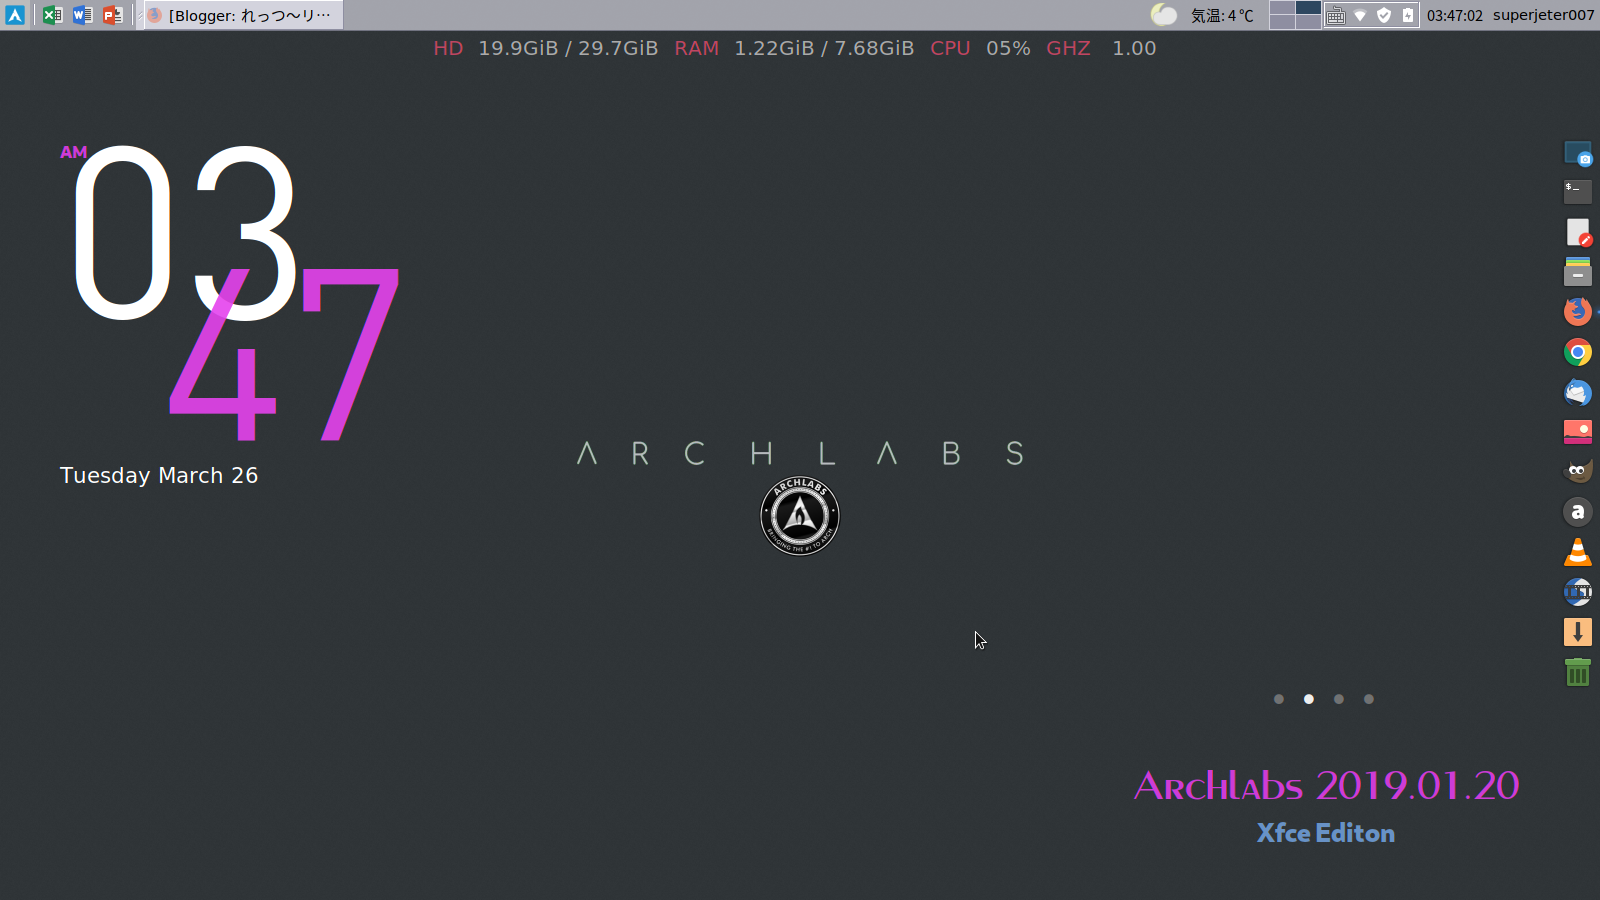 Archlabs 19 01 Xfce Edition 日本では紹介事例の少ない高評価arch Base Linuxを試す